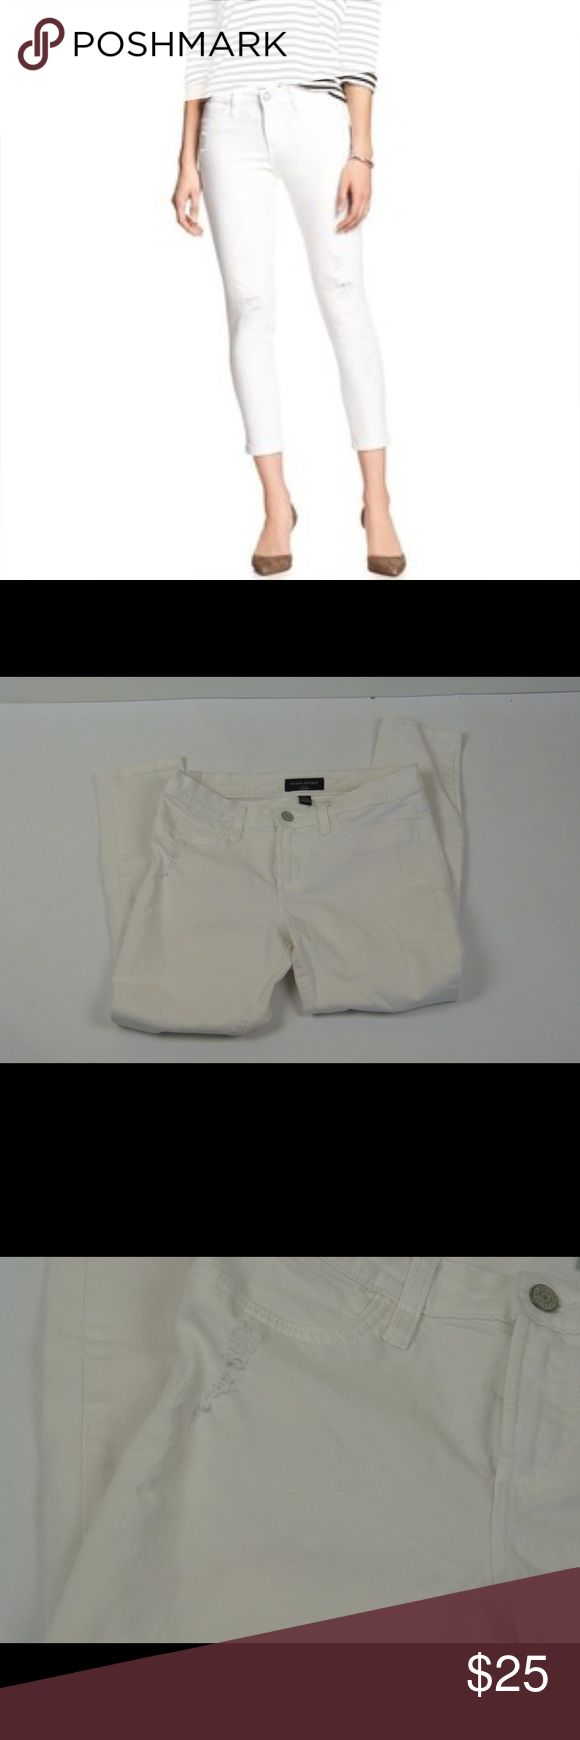 """Banana Republic White Distressed Legging Jeans Banana Republic White Distressed Legging Jeans Cropped Size 8 Excellent pre-owned condition 92% cotton, 6% poly and 2% spandex 8"""" rise 15"""" across the waist  25"""" inseam Banana Republic Jeans Ankle & Cropped"""